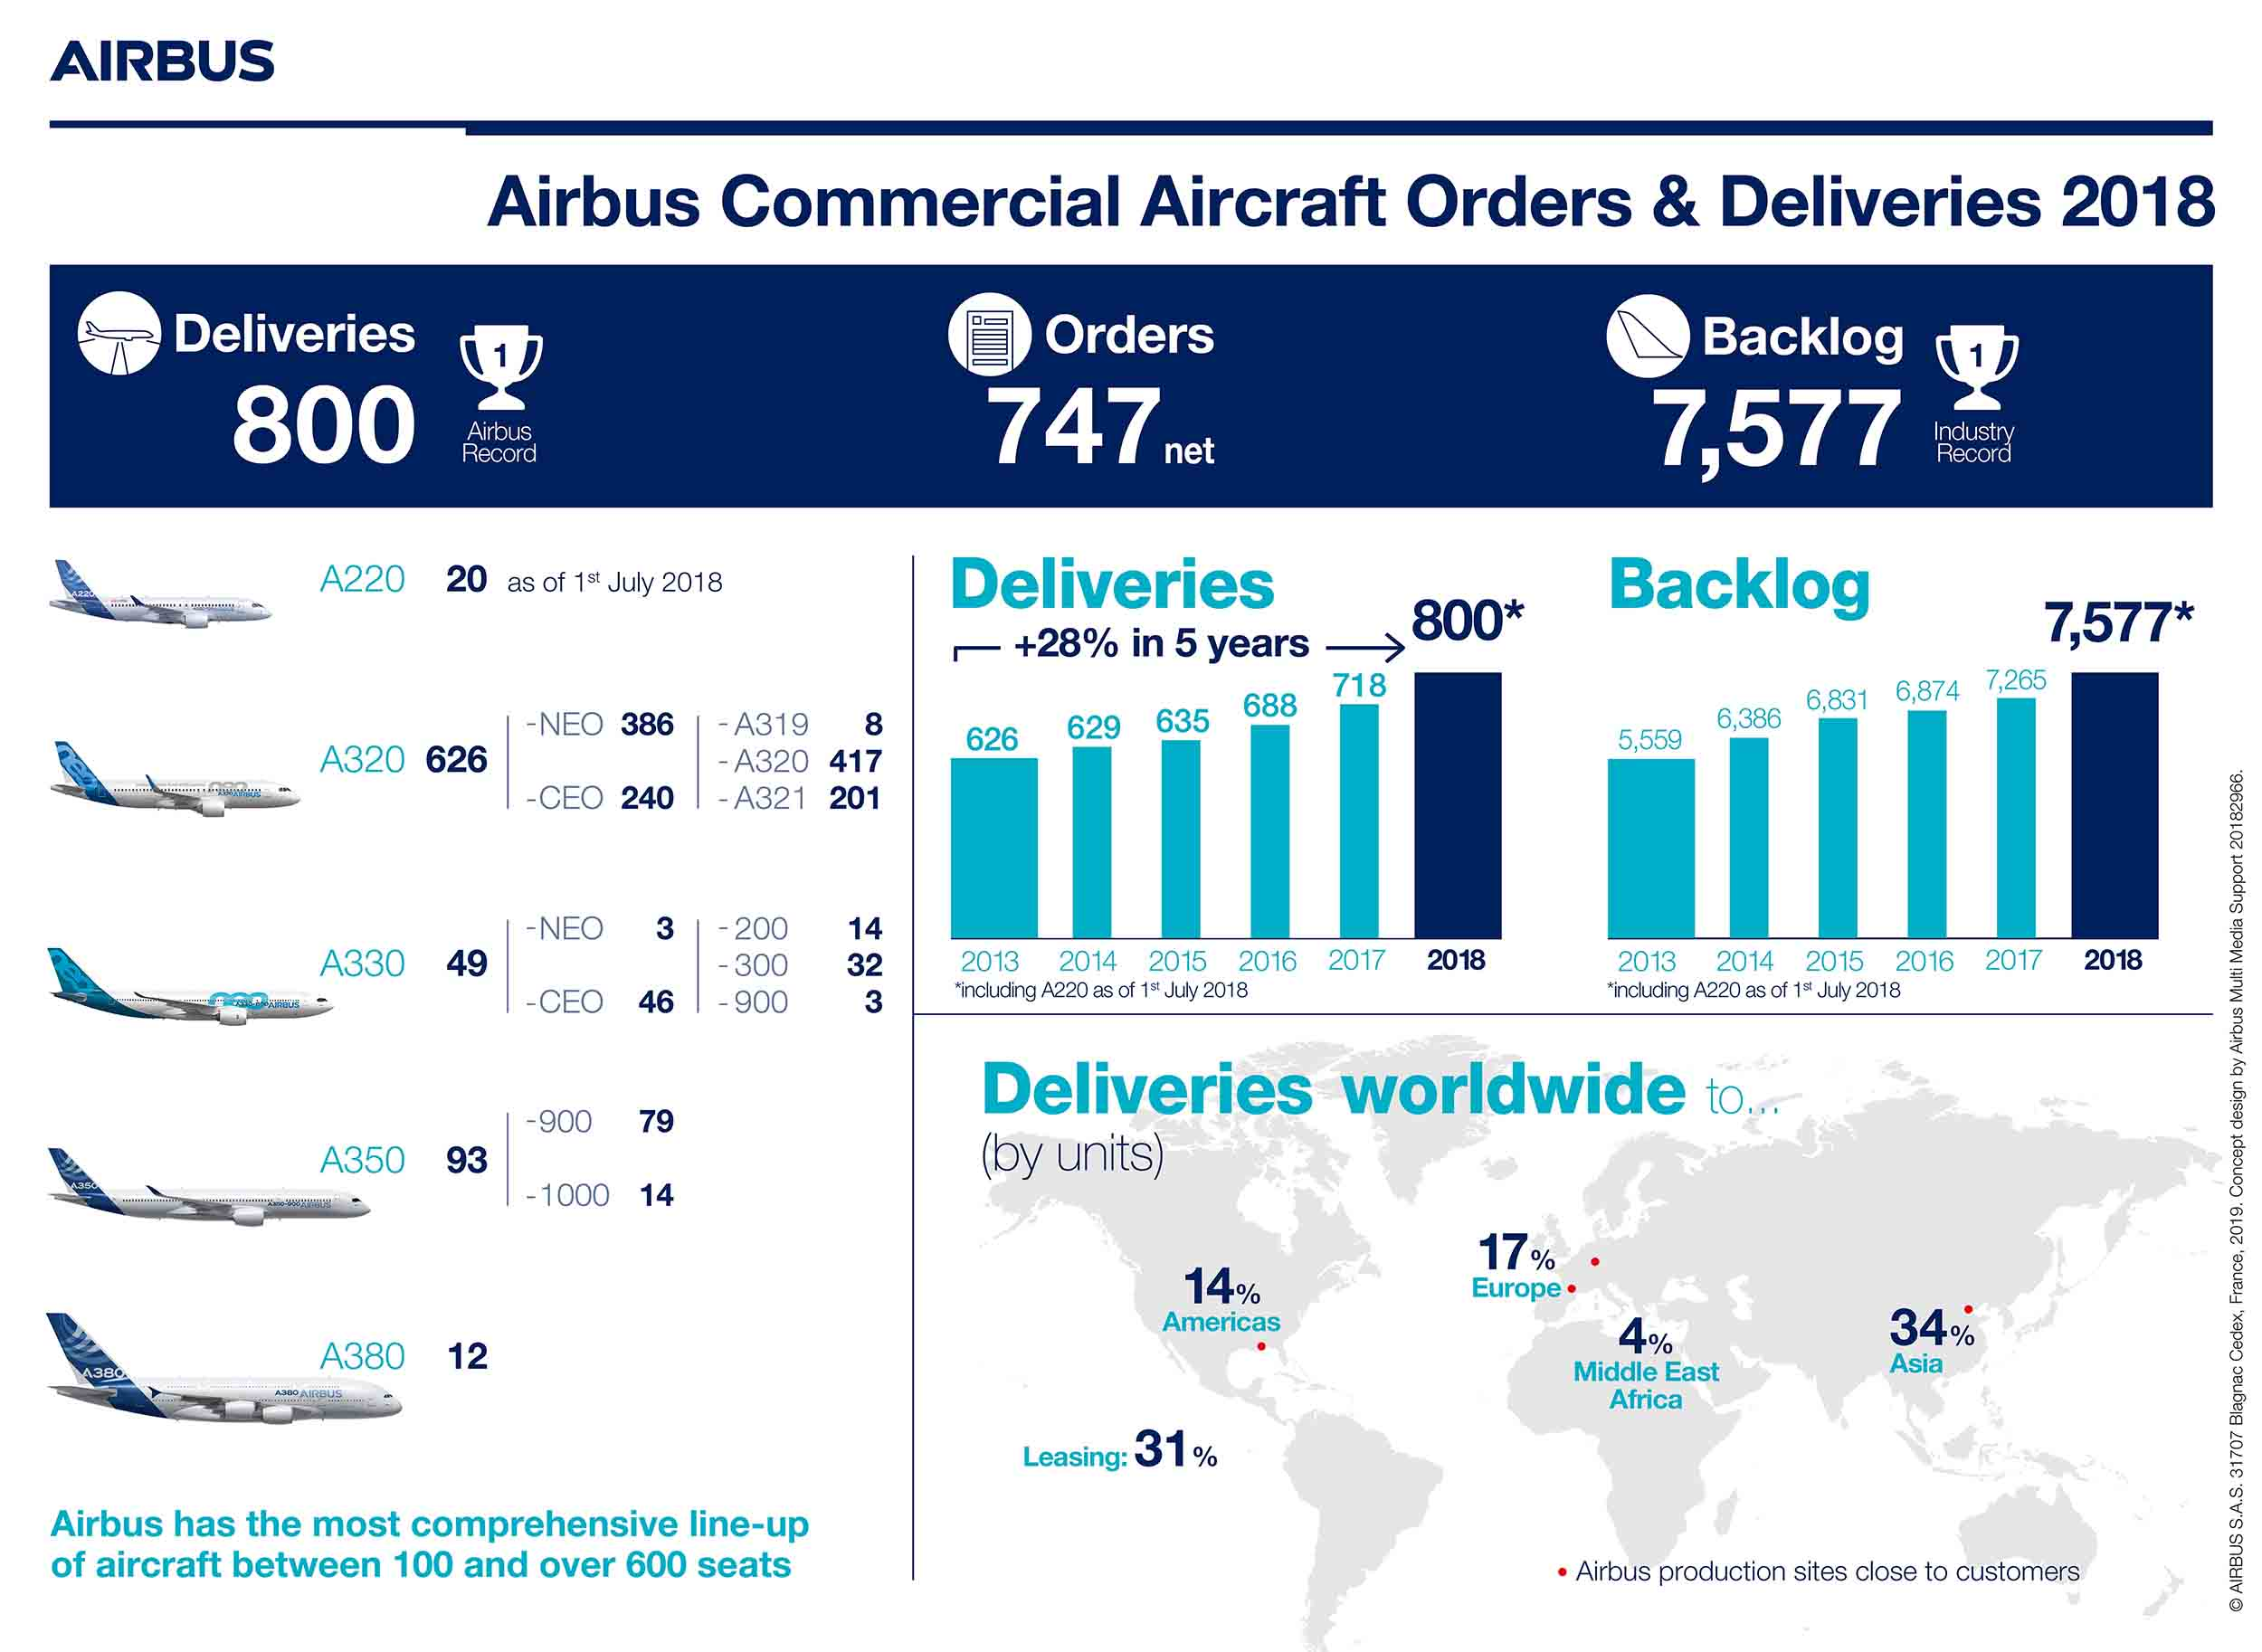 Infographic-Airbus-Commercial-Aircraft-Orders-and-Deliveries-2018-